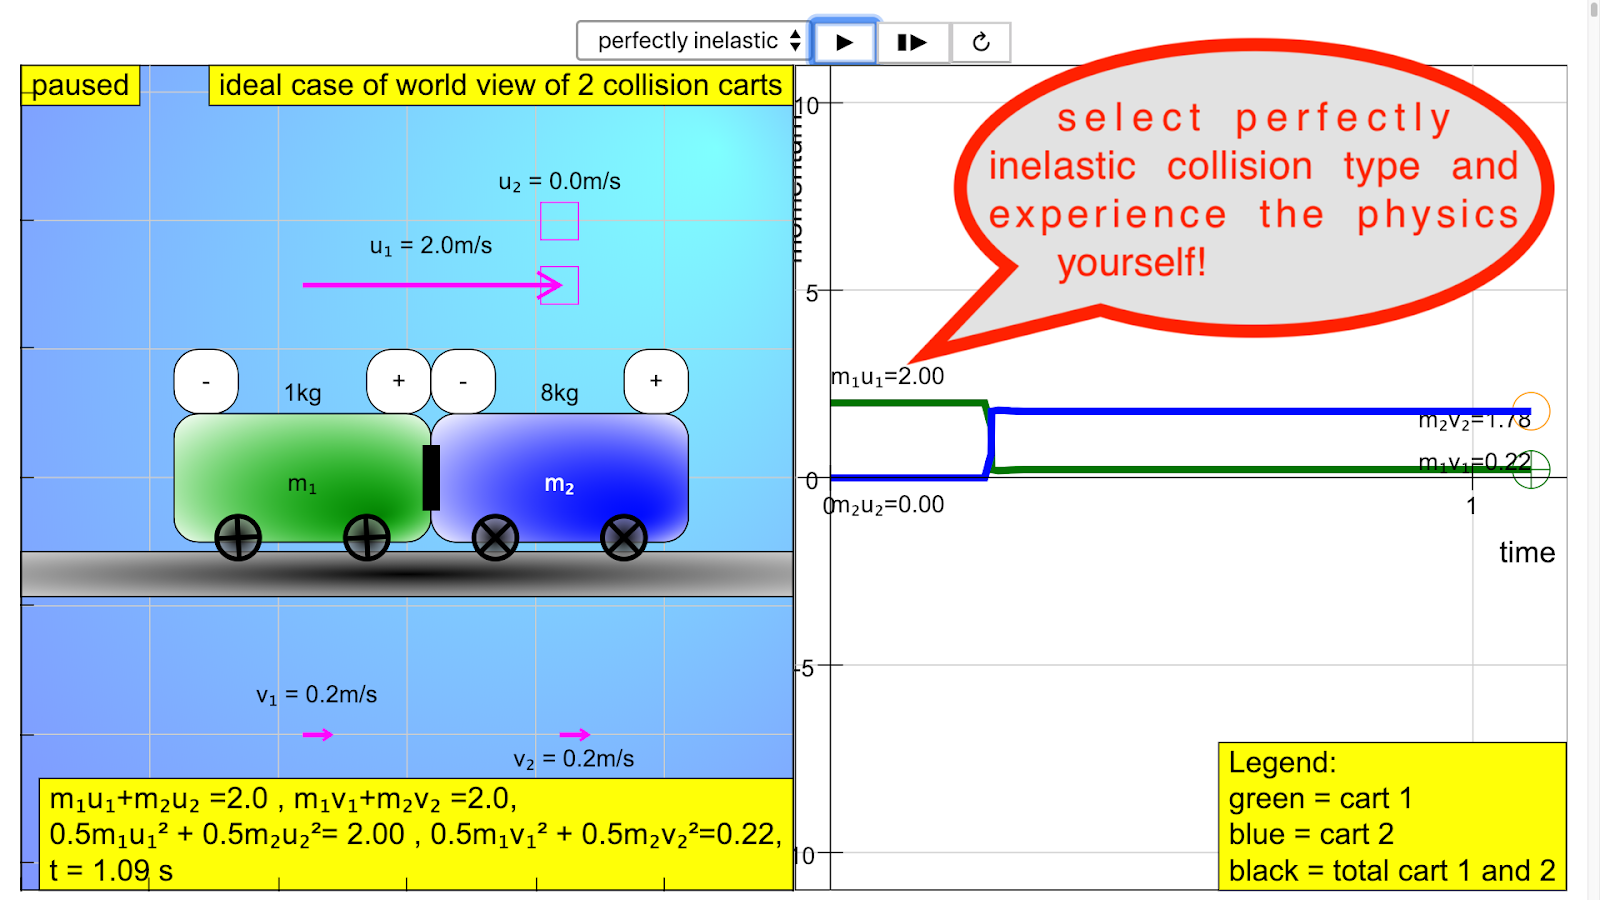 Collision Carts JavaScript HTML5 Applet Simulation Model